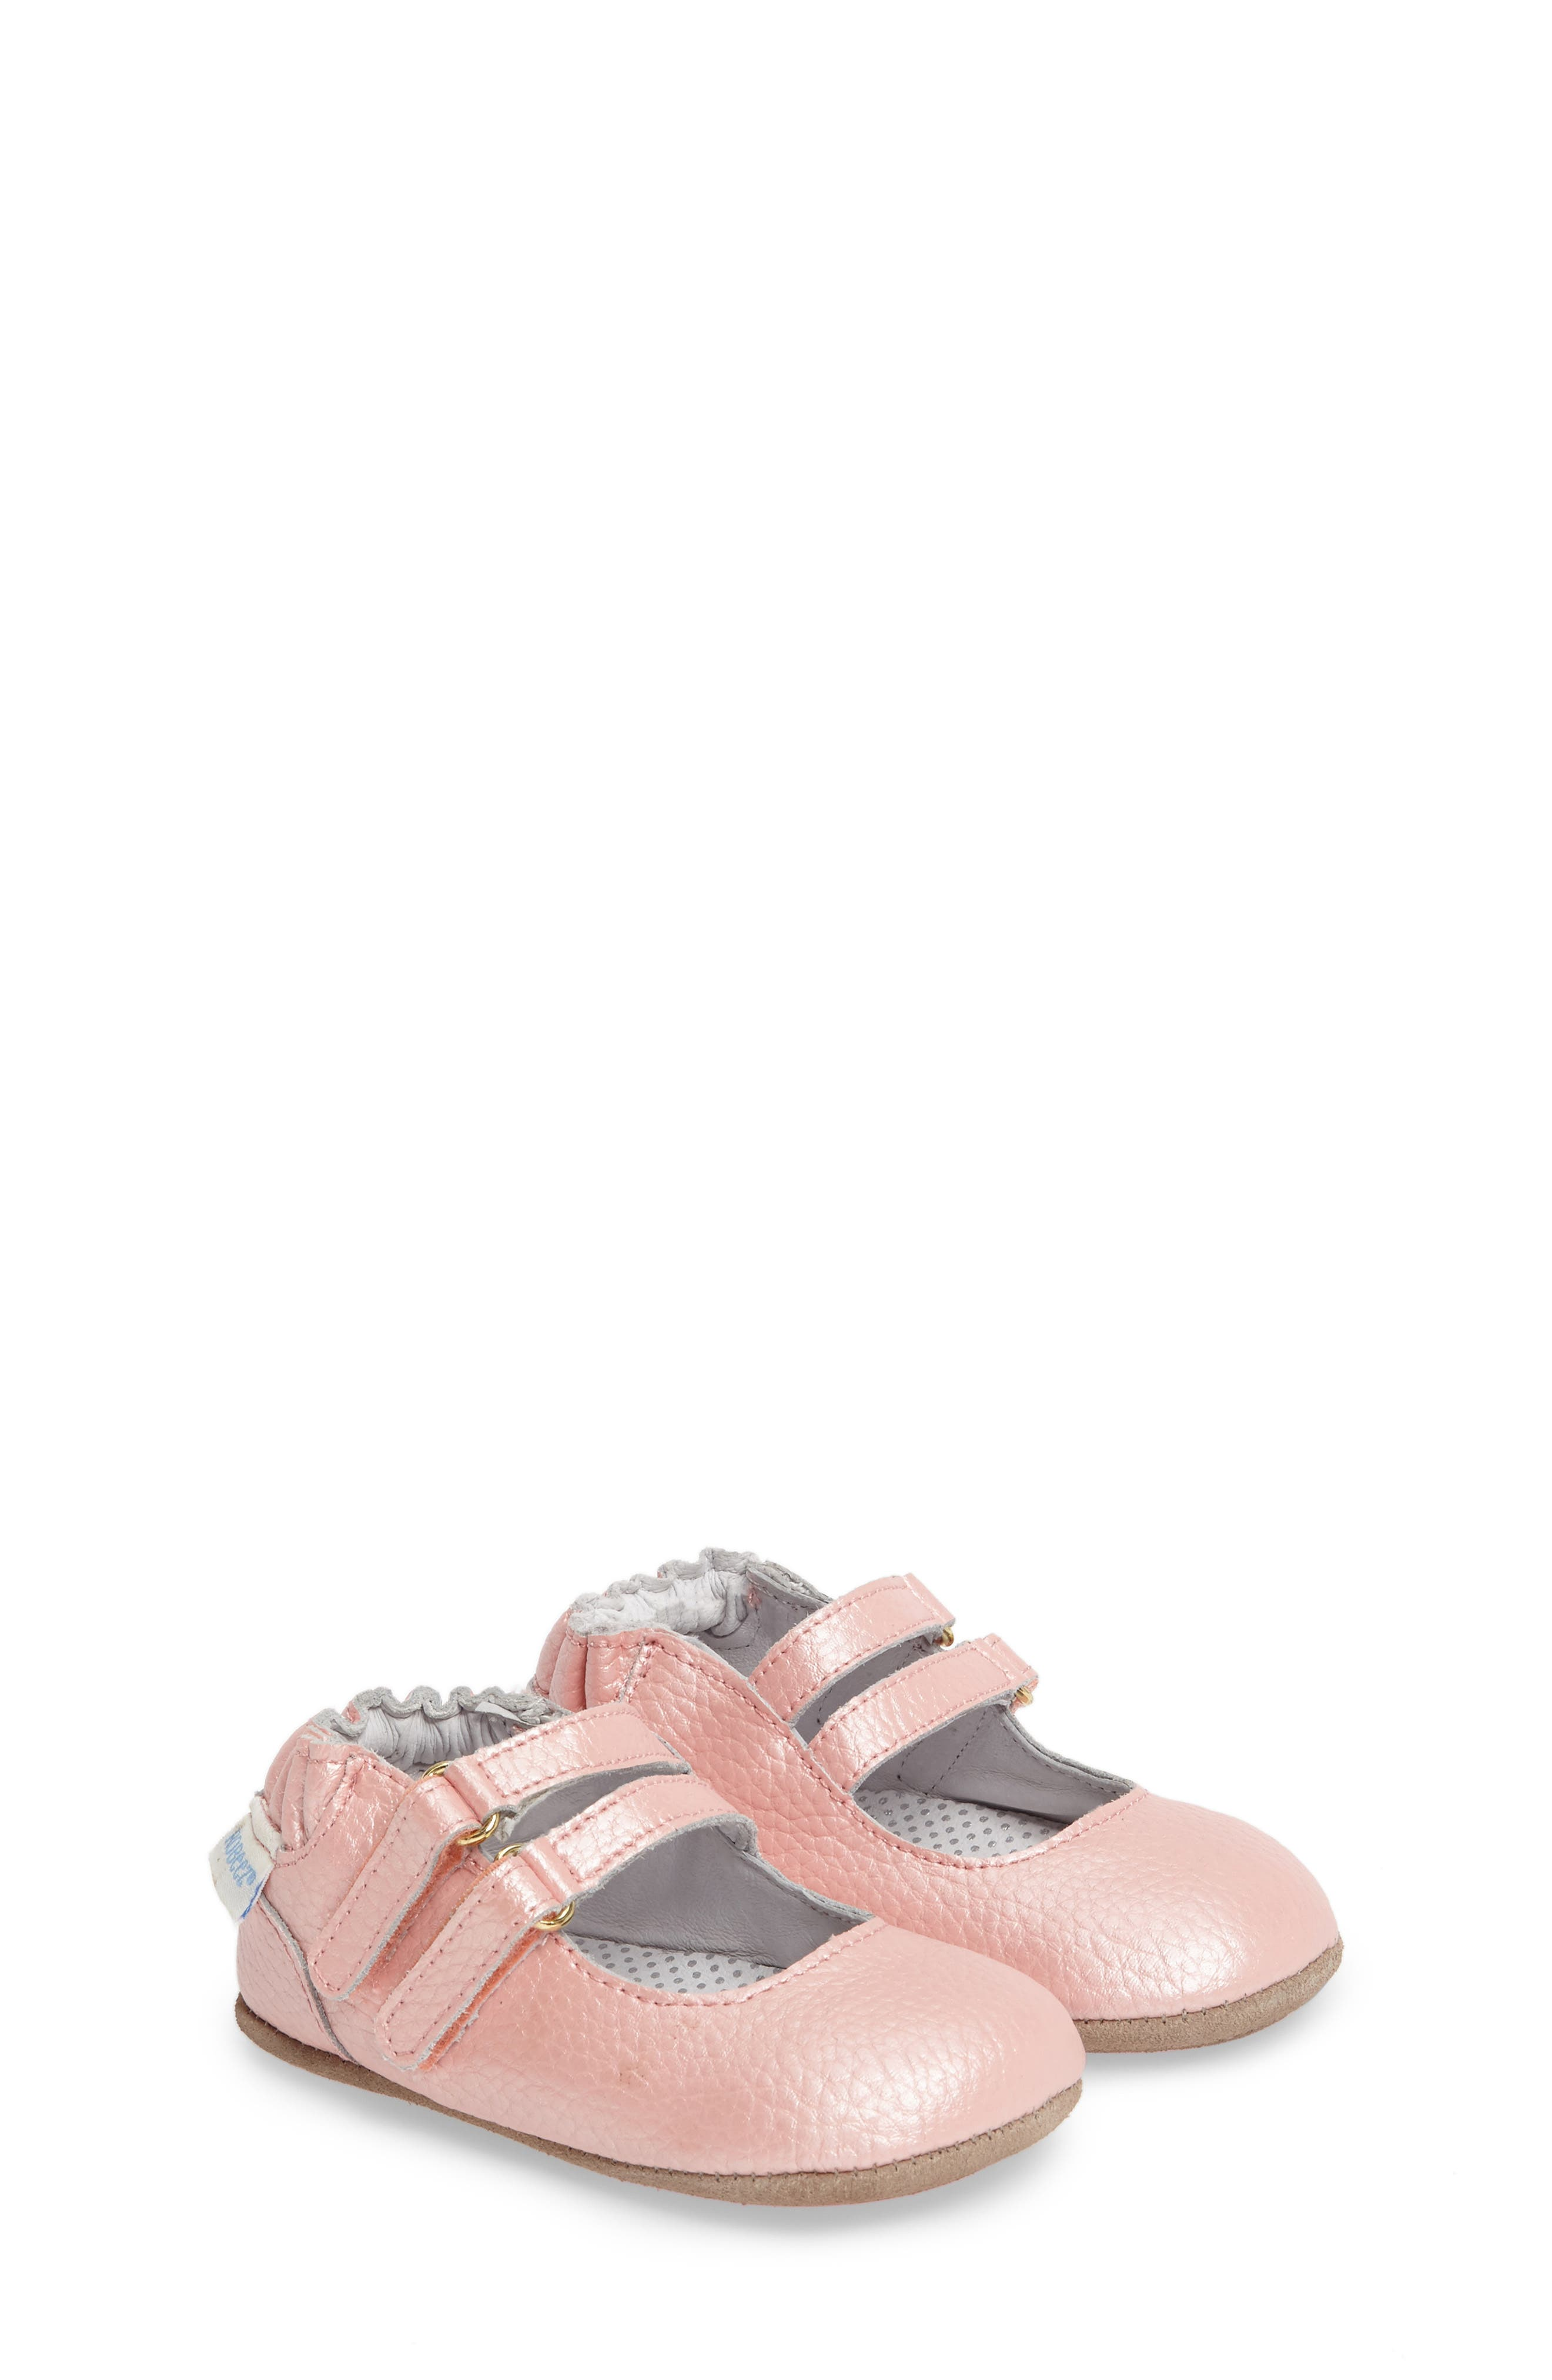 Rose Mary Jane Crib Shoe,                             Main thumbnail 1, color,                             ROSE